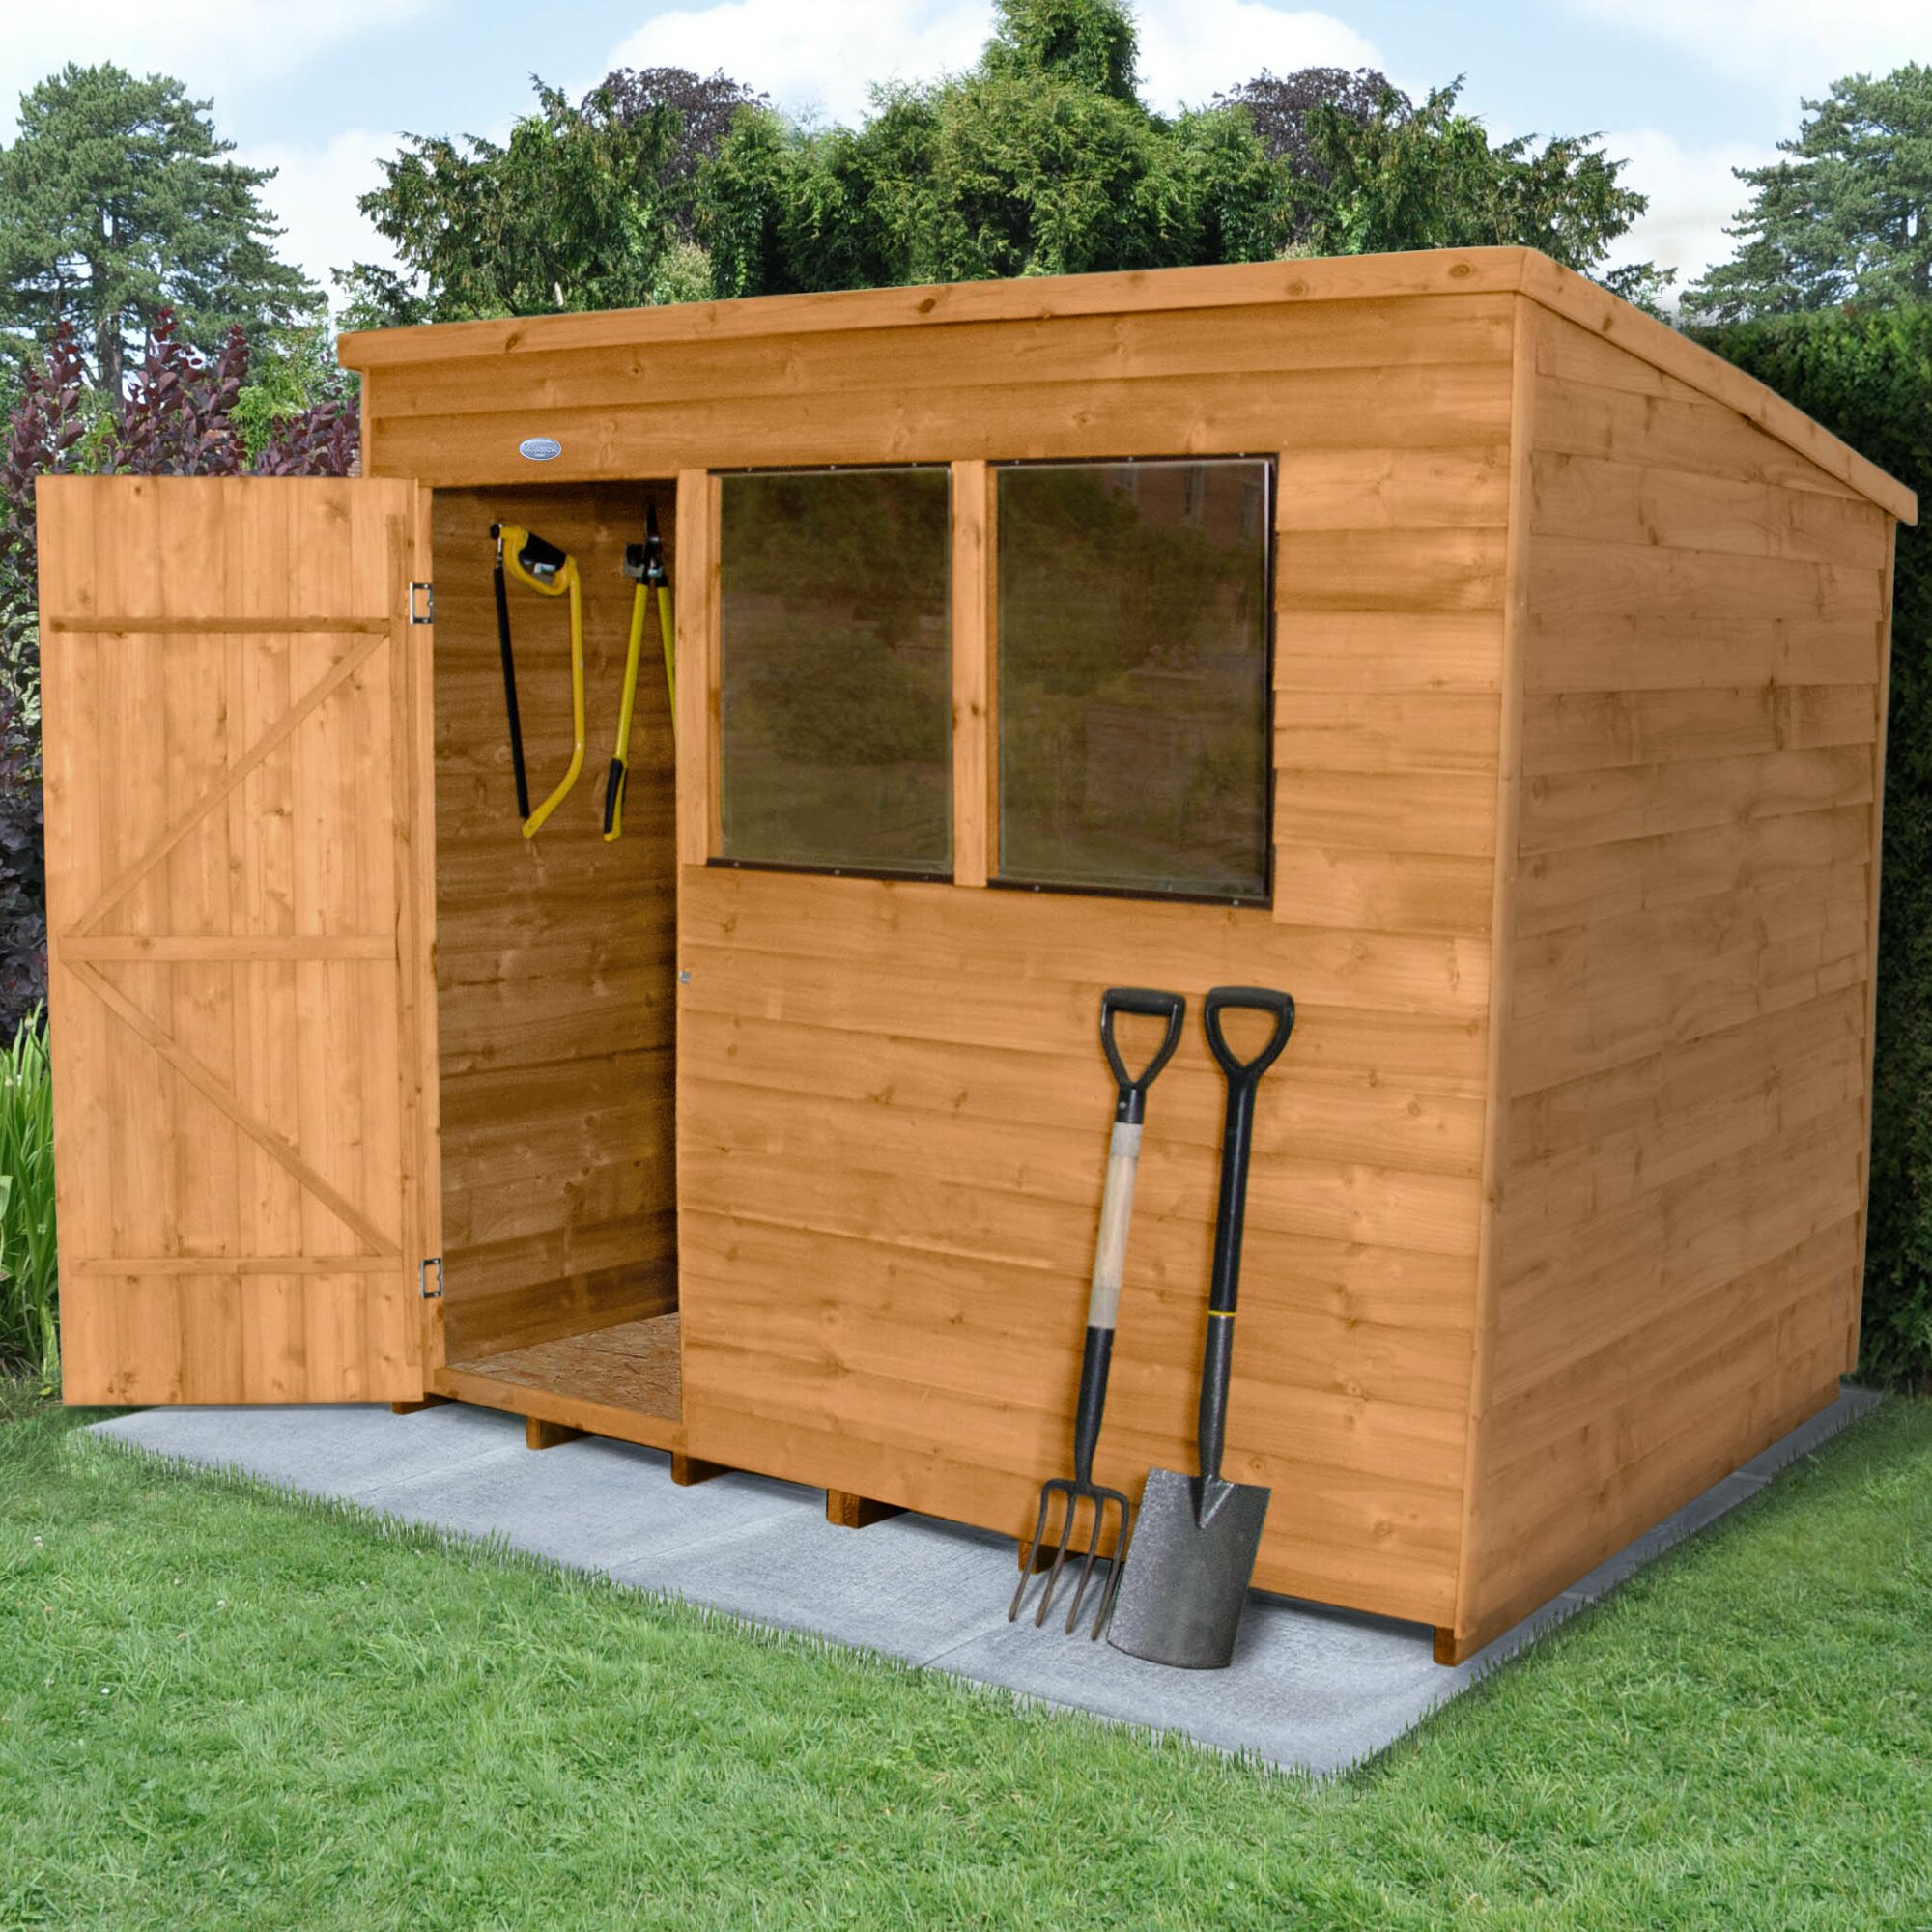 Forest Garden 8 X 6 Wooden Storage Shed & Reviews